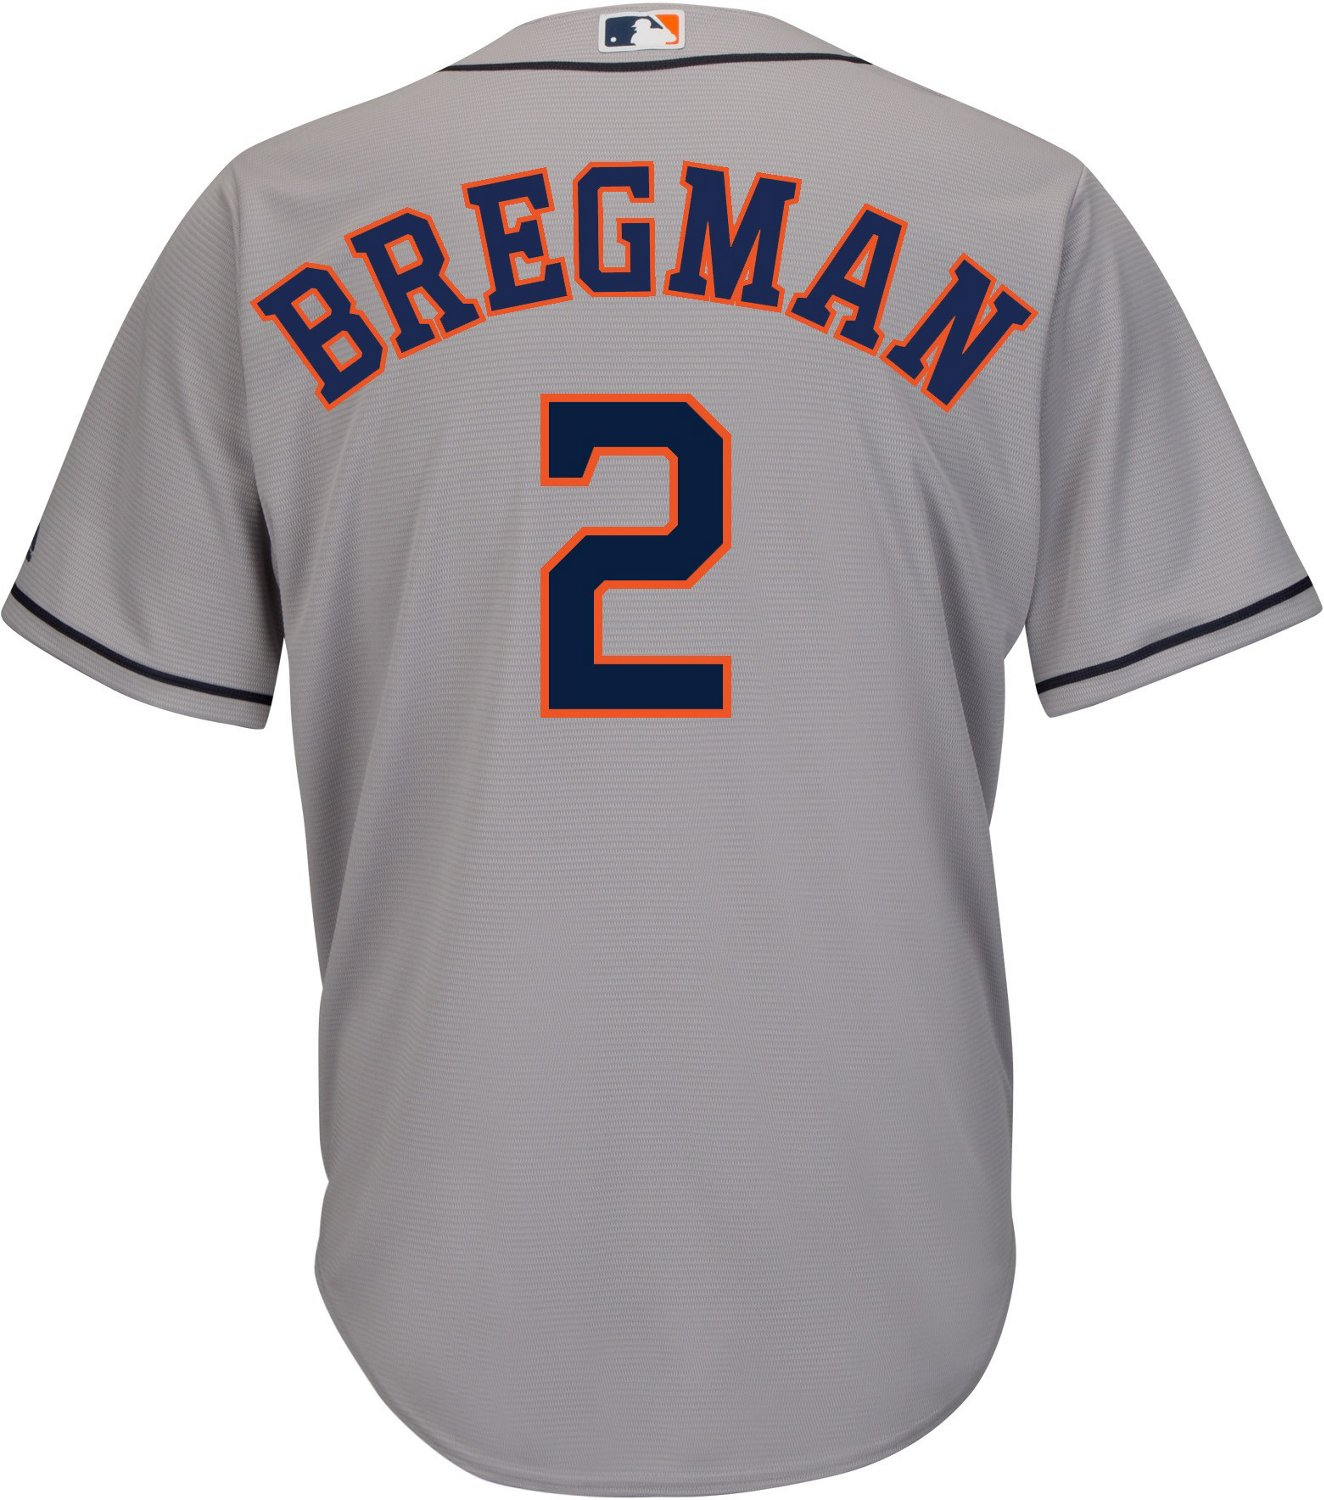 buy online bbb28 1344b Majestic Men's Houston Astros Alex Bregman 2 Replica Jersey